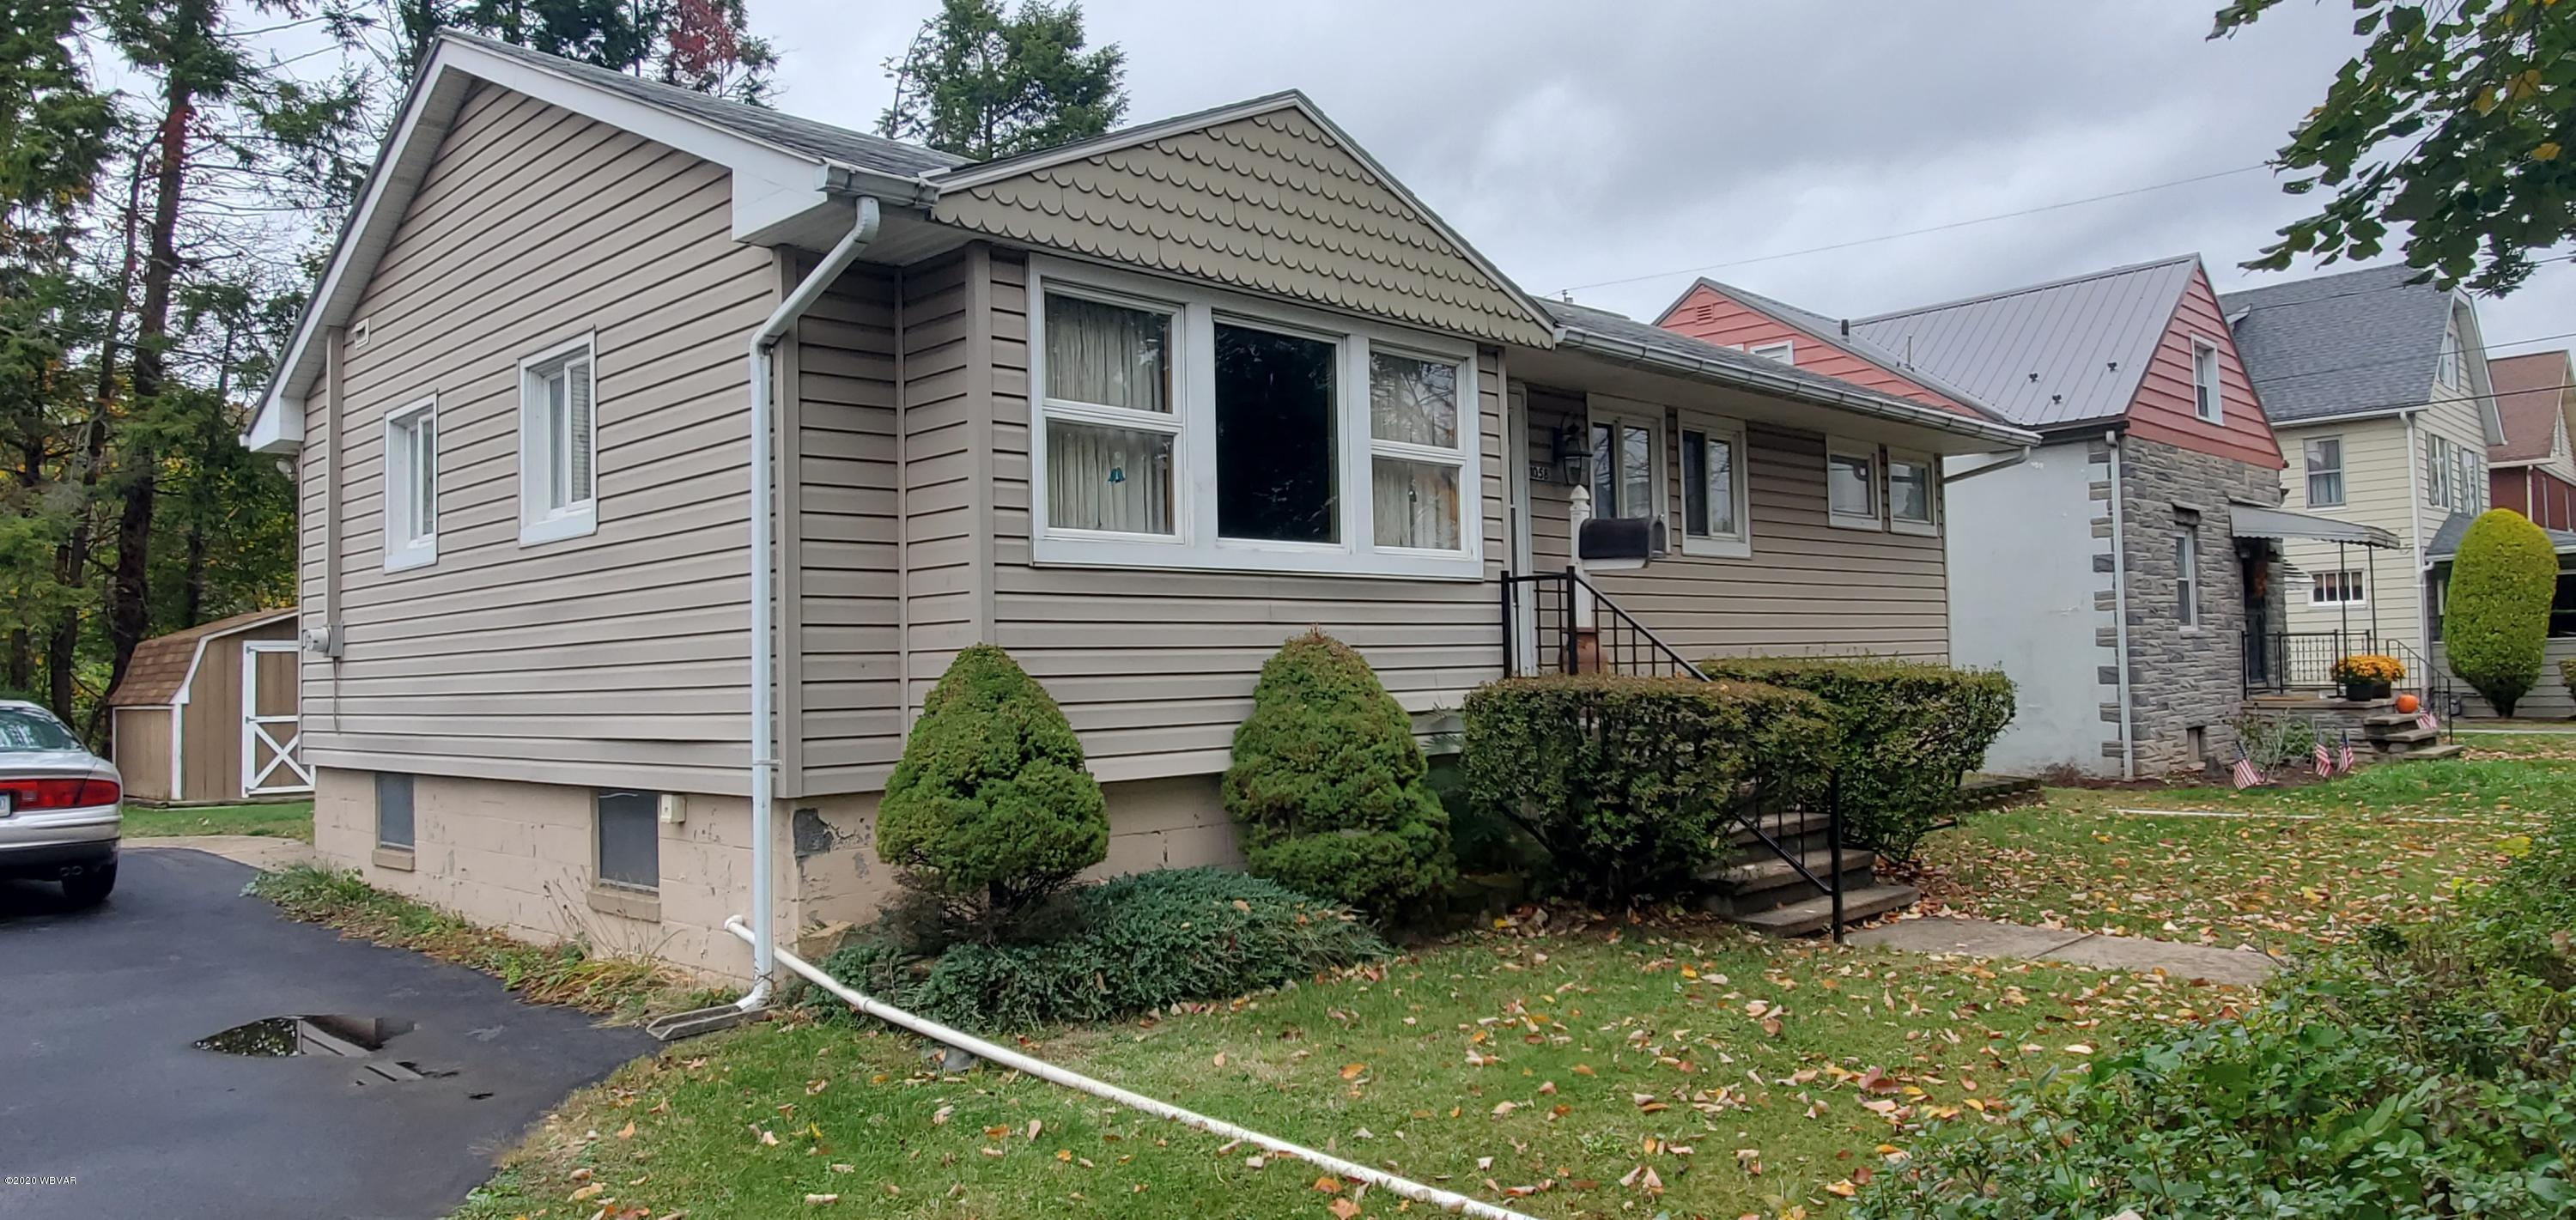 1058 PARK AVENUE, Williamsport, PA 17701, 3 Bedrooms Bedrooms, ,1 BathroomBathrooms,Residential,For sale,PARK,WB-91361